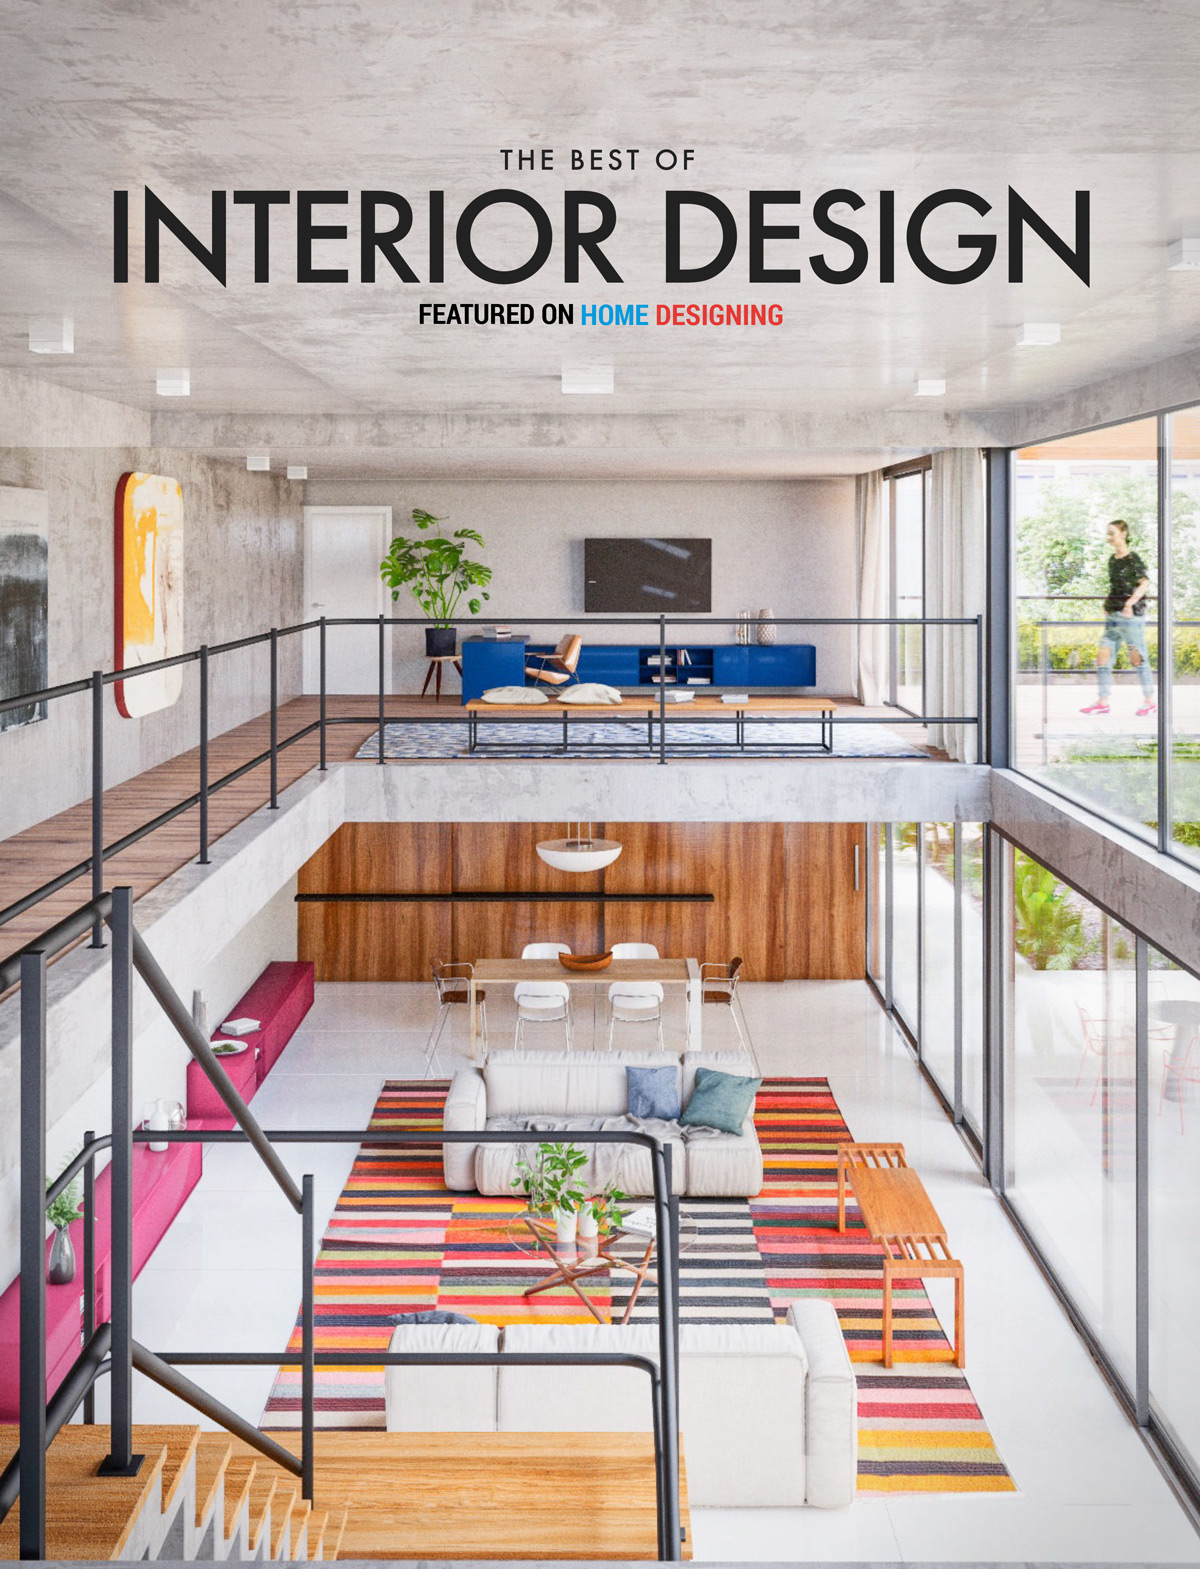 Free interior design books for Interior design books